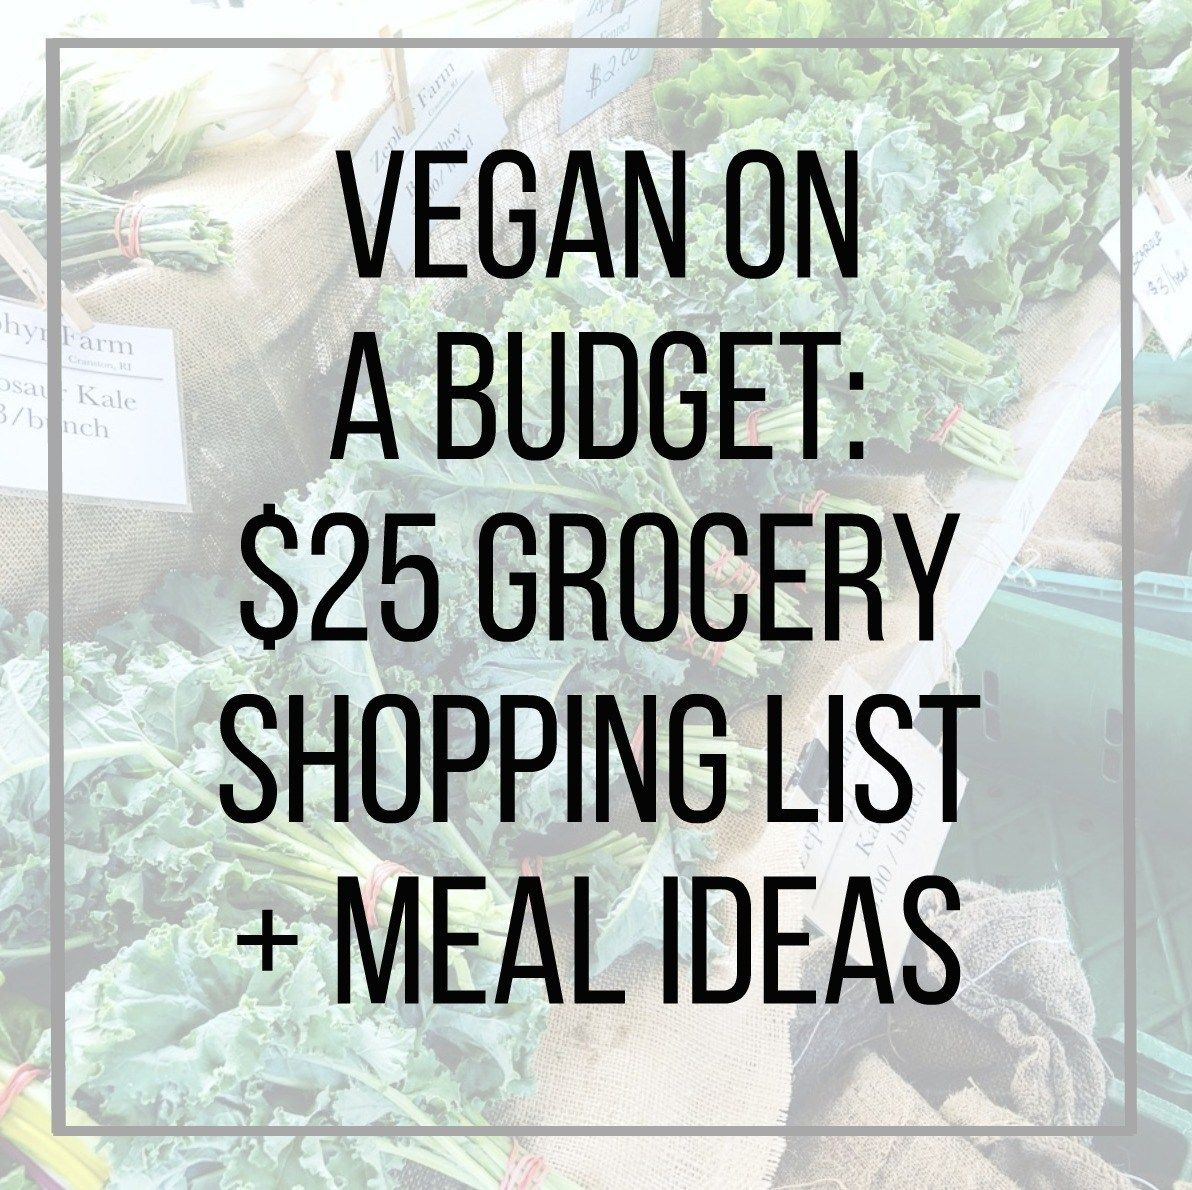 Vegan On A Budget 25 Grocery Shopping List Meal Ideas